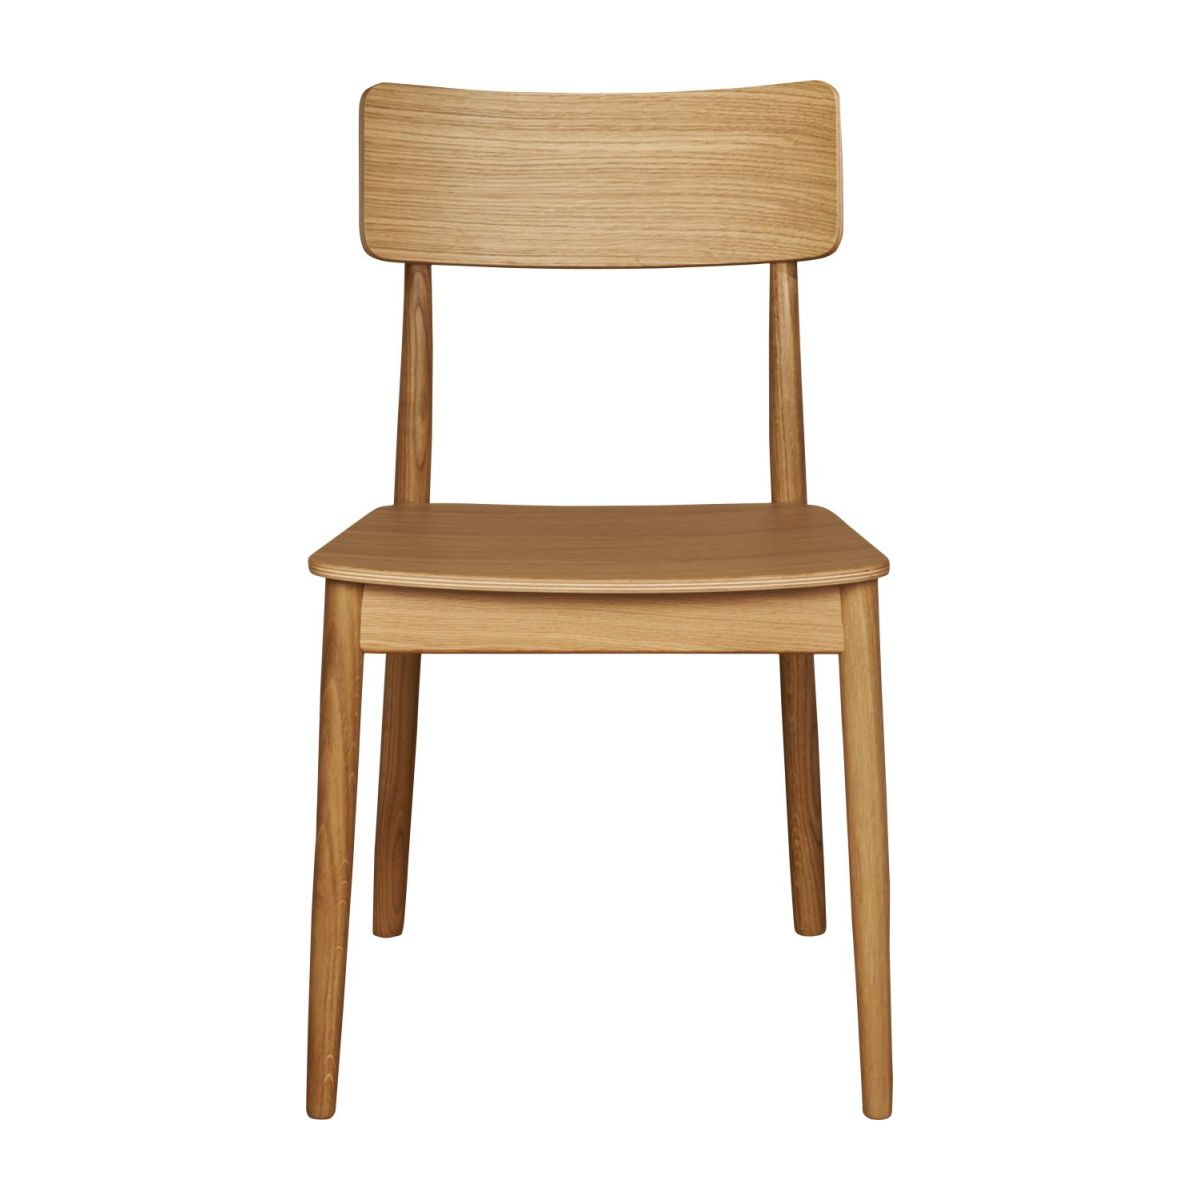 Oak chair n°3